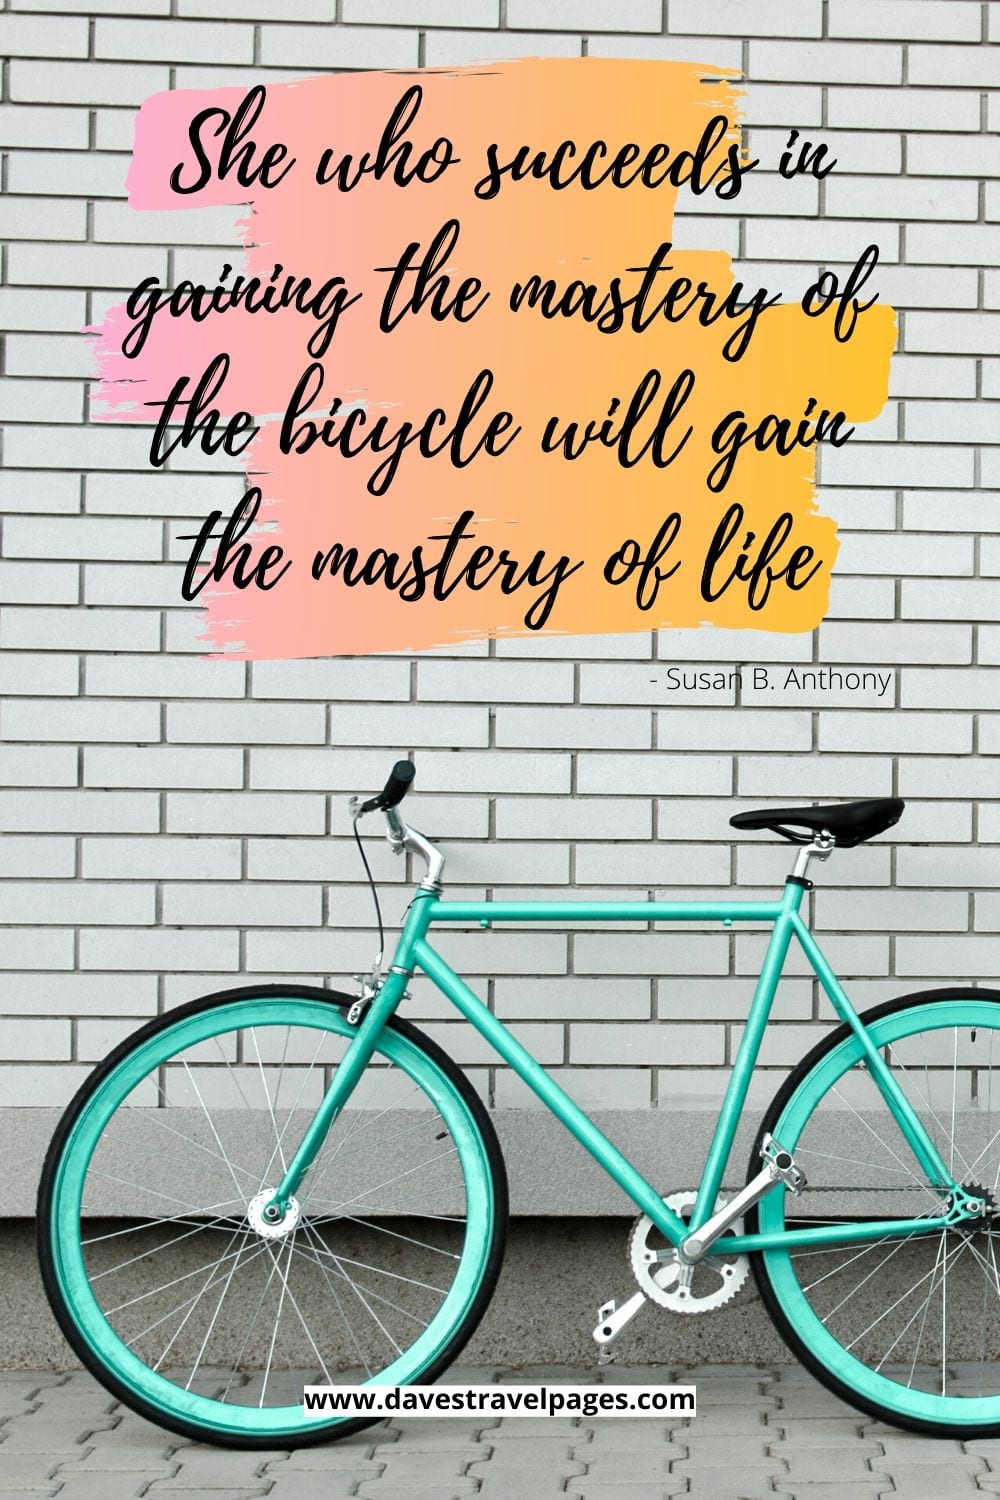 Bicycle Quote: She who succeeds in gaining the mastery of the bicycle will gain the mastery of life. Susan B. Anthony